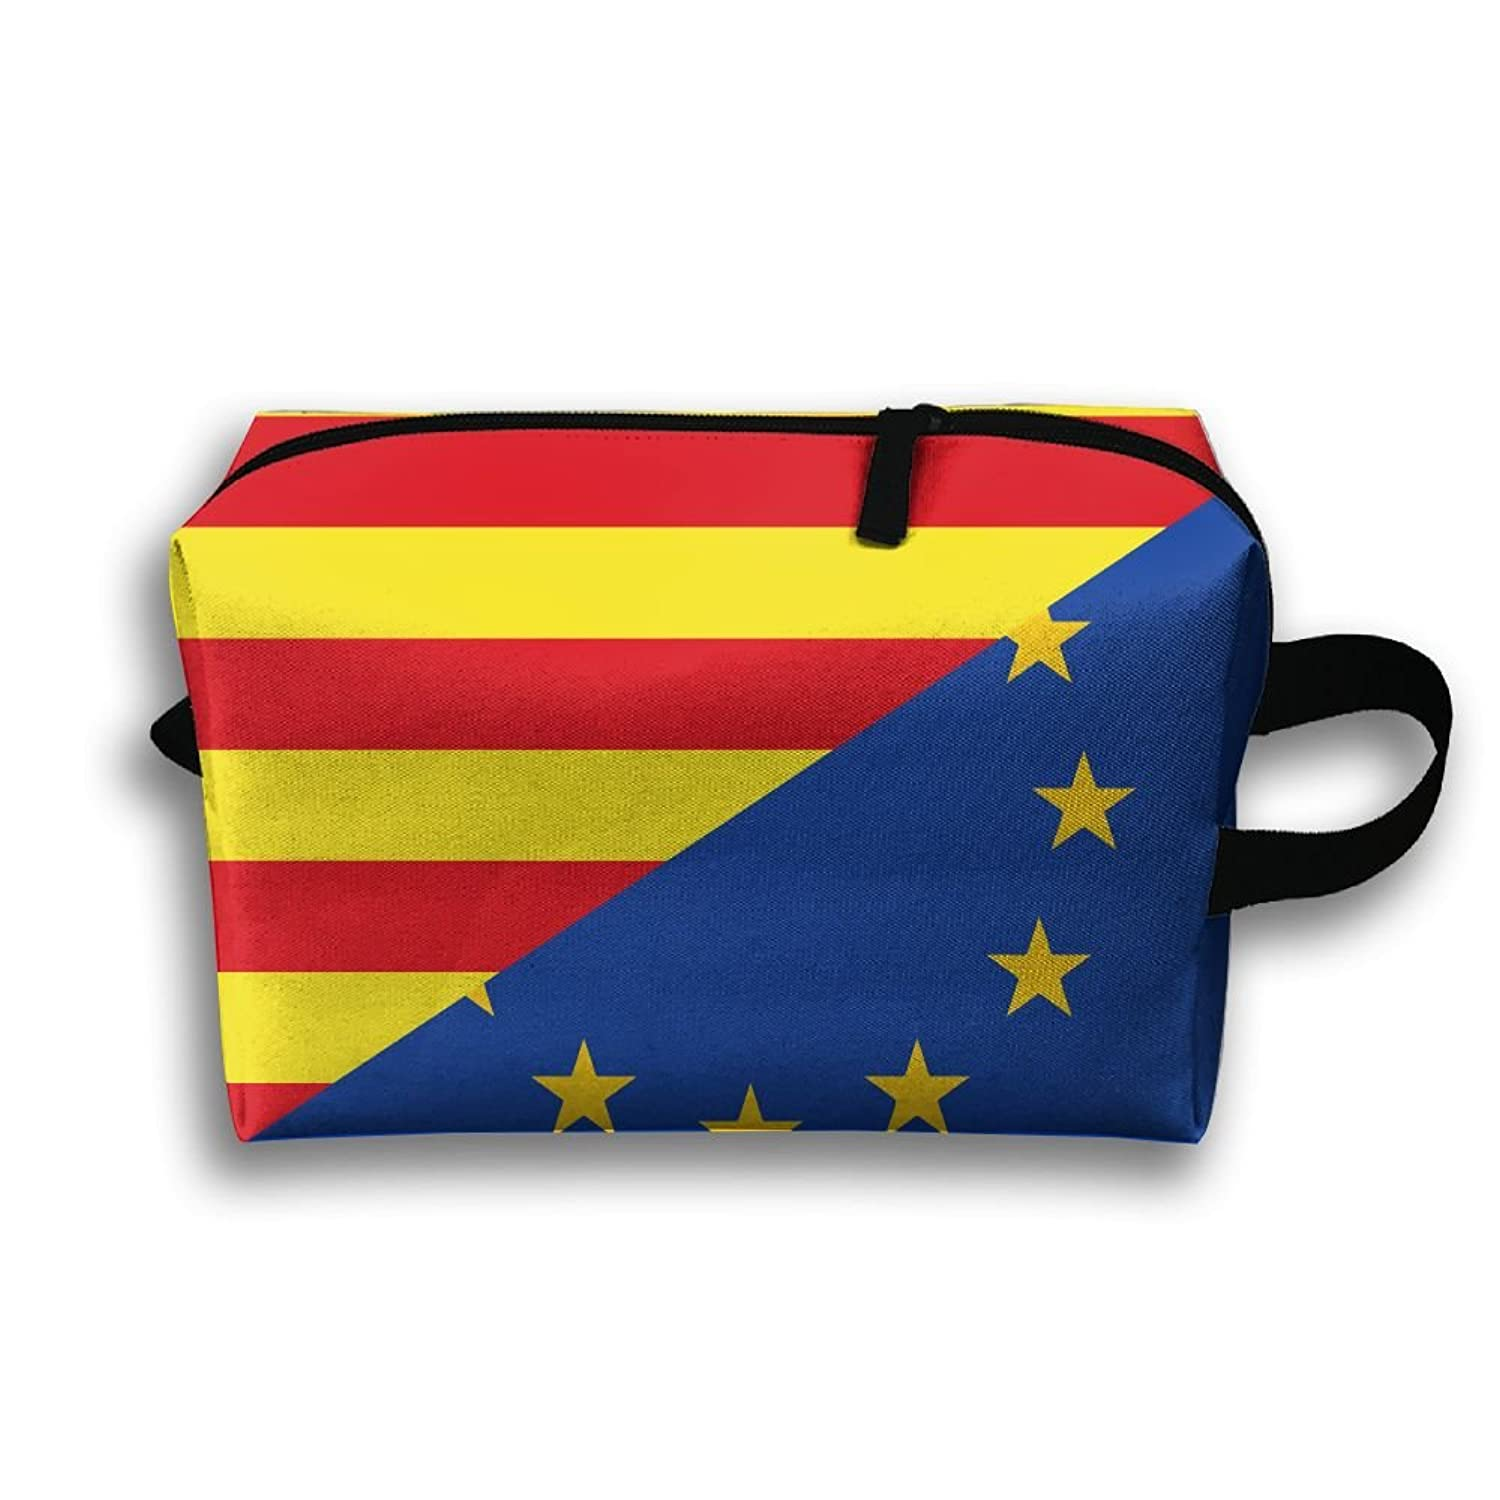 American Catalunya Flag Unisex Fashion Travel Bag Portable Toiletry Bag Organizer Storage